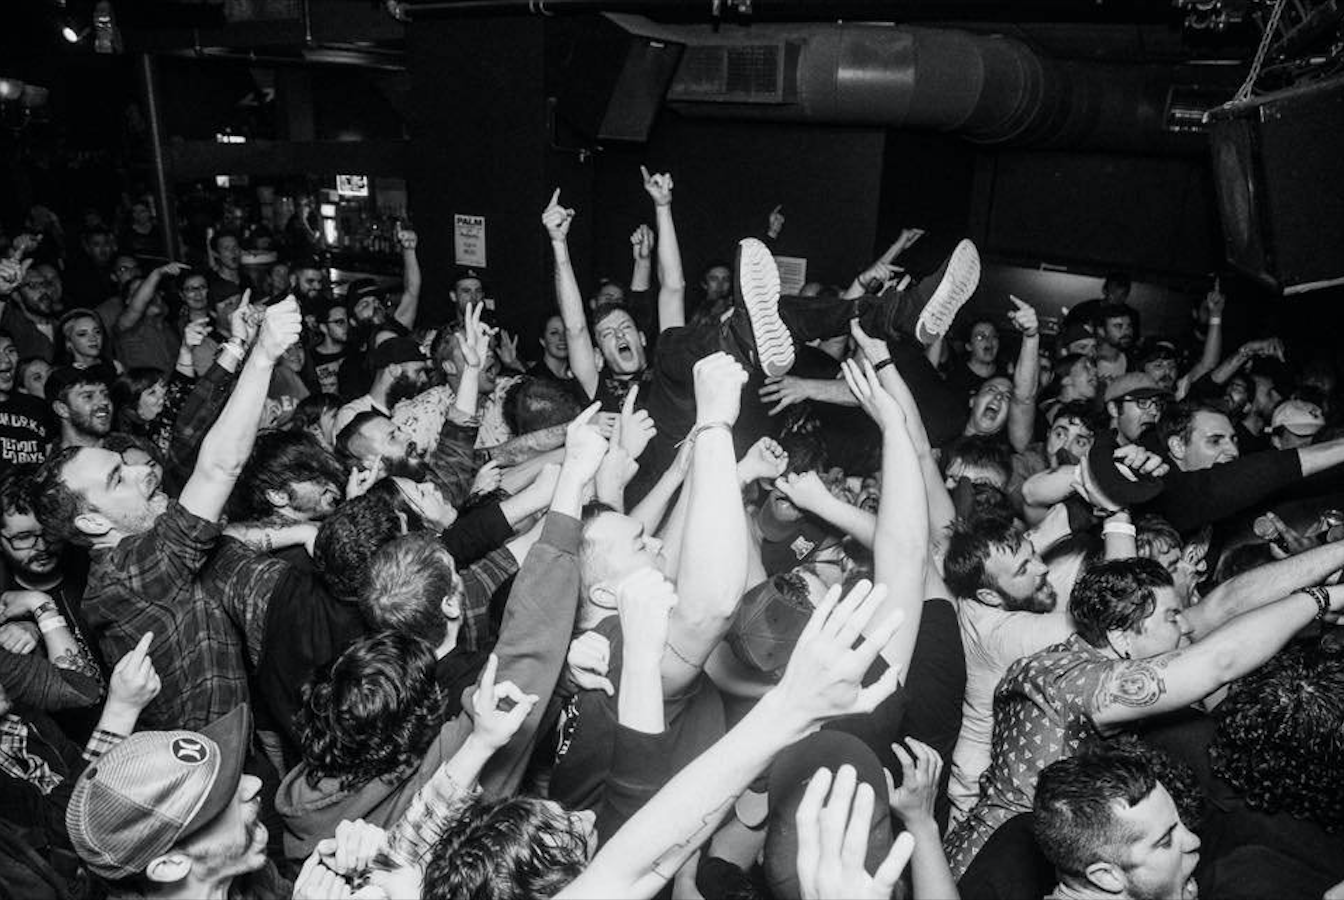 A crowd goes wild at Great Scott. The venue is known for attracting college students for local concerts every night.